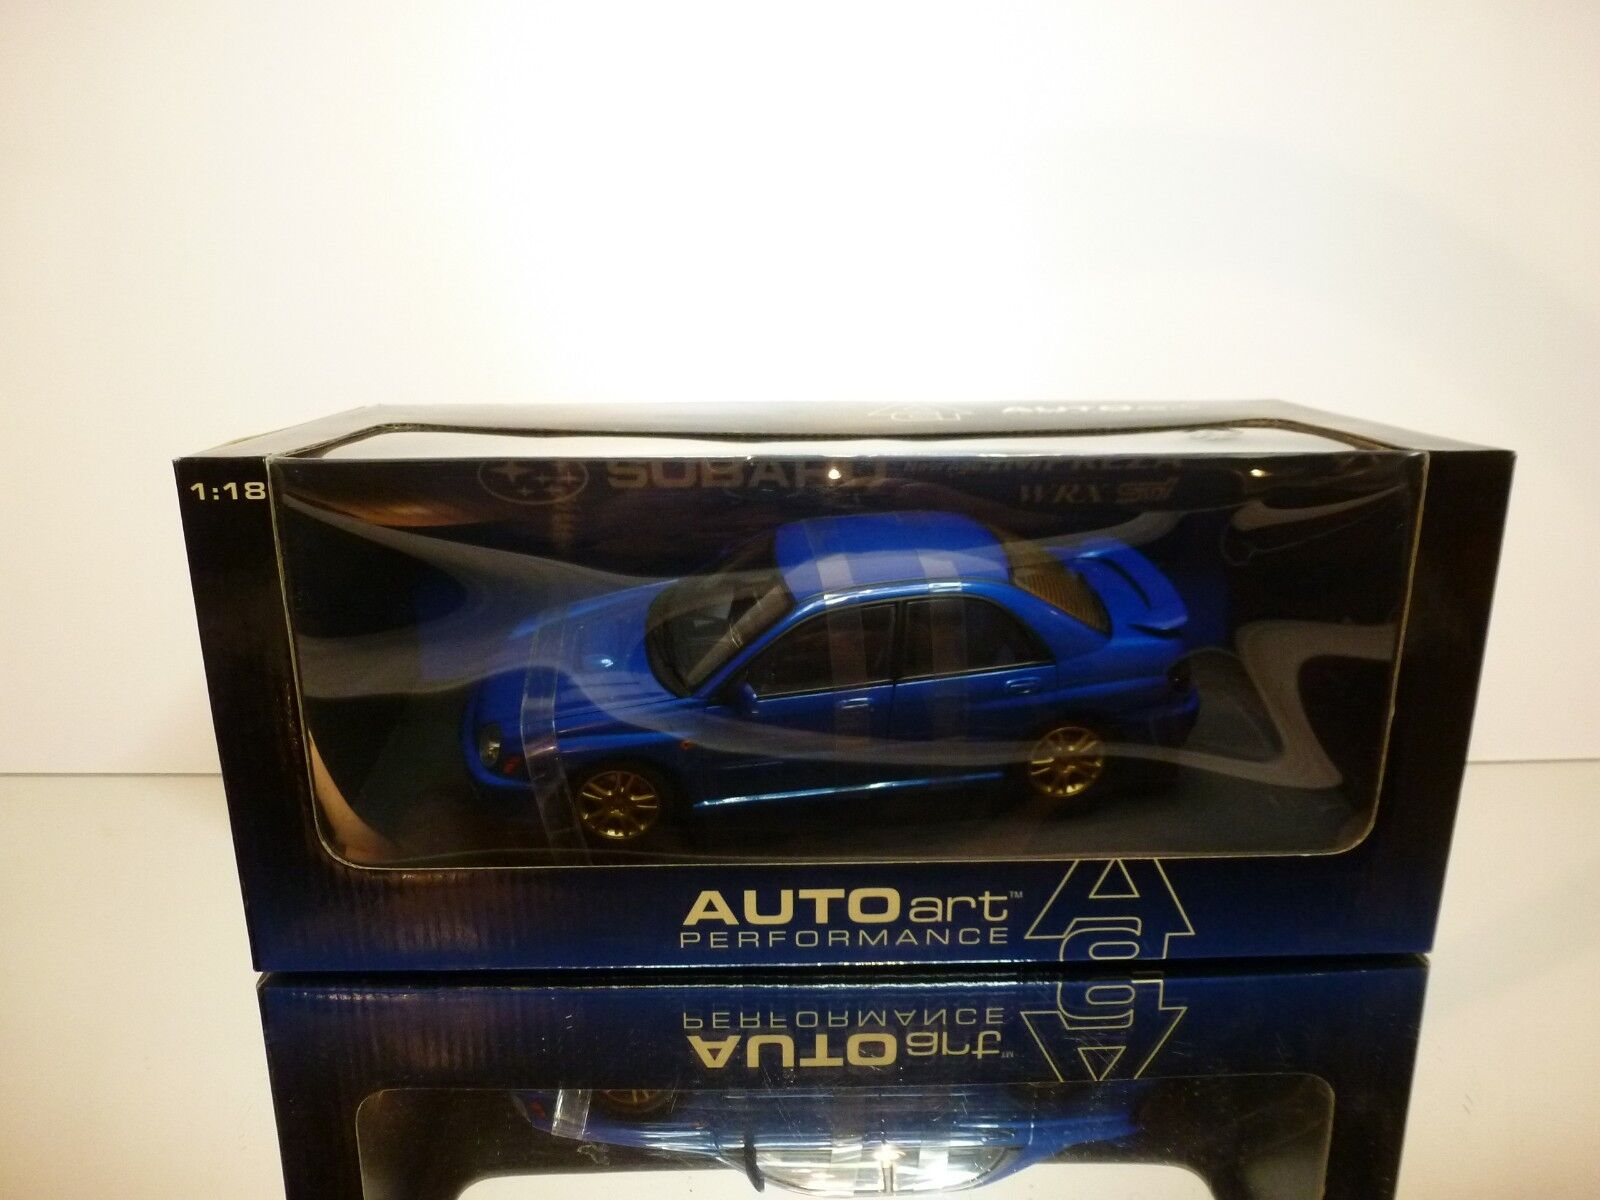 AUTOART 78642 SUBARU NEW AGE IMPREZA WRX STI RHD - 1 18 RARE - EXCELLENT IN BOX